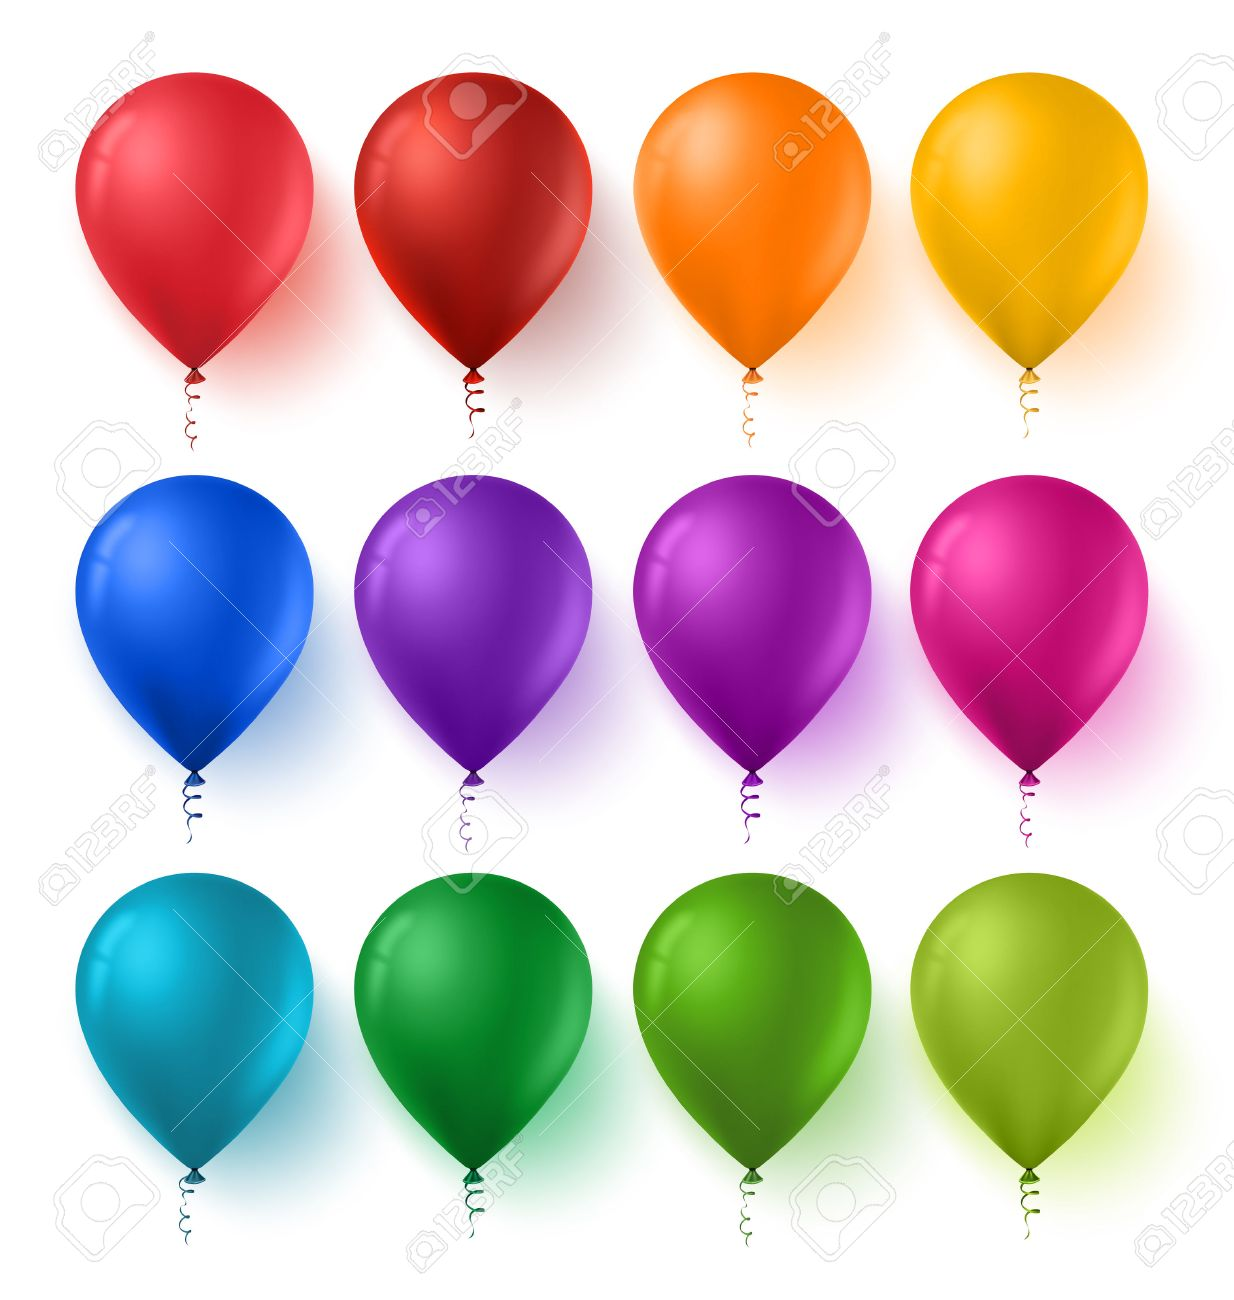 3d Realistic Colorful Set of Birthday Balloons with Glossy and Shiny Colors Isolated in White Background. Vector Illustration - 48316404